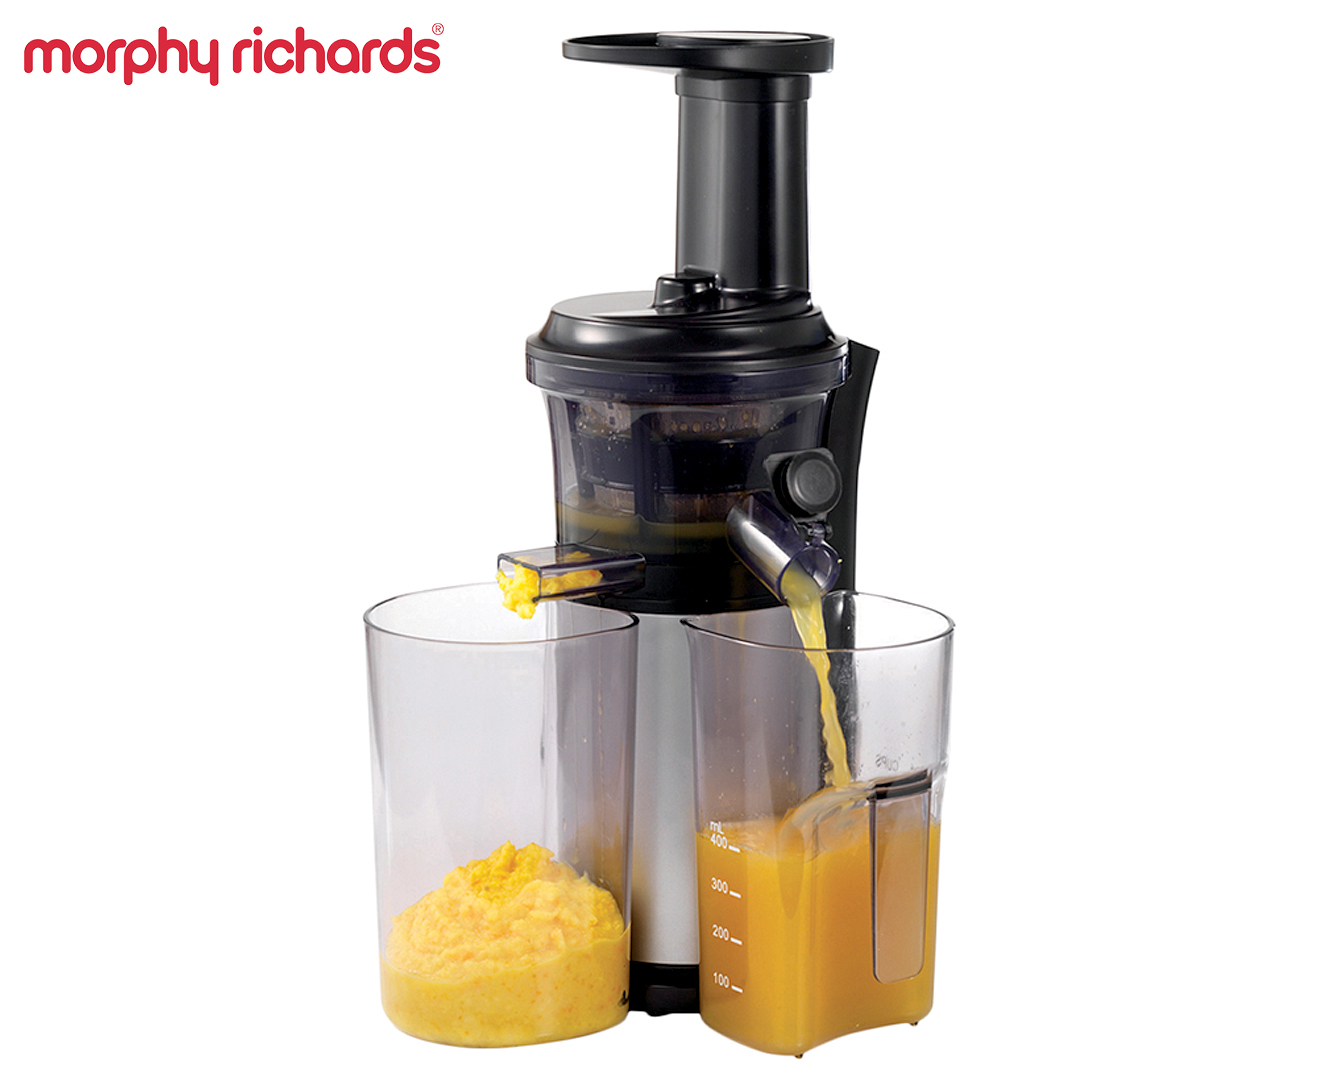 Morphy Richards Slow Juicing Press - Black/Clear eBay